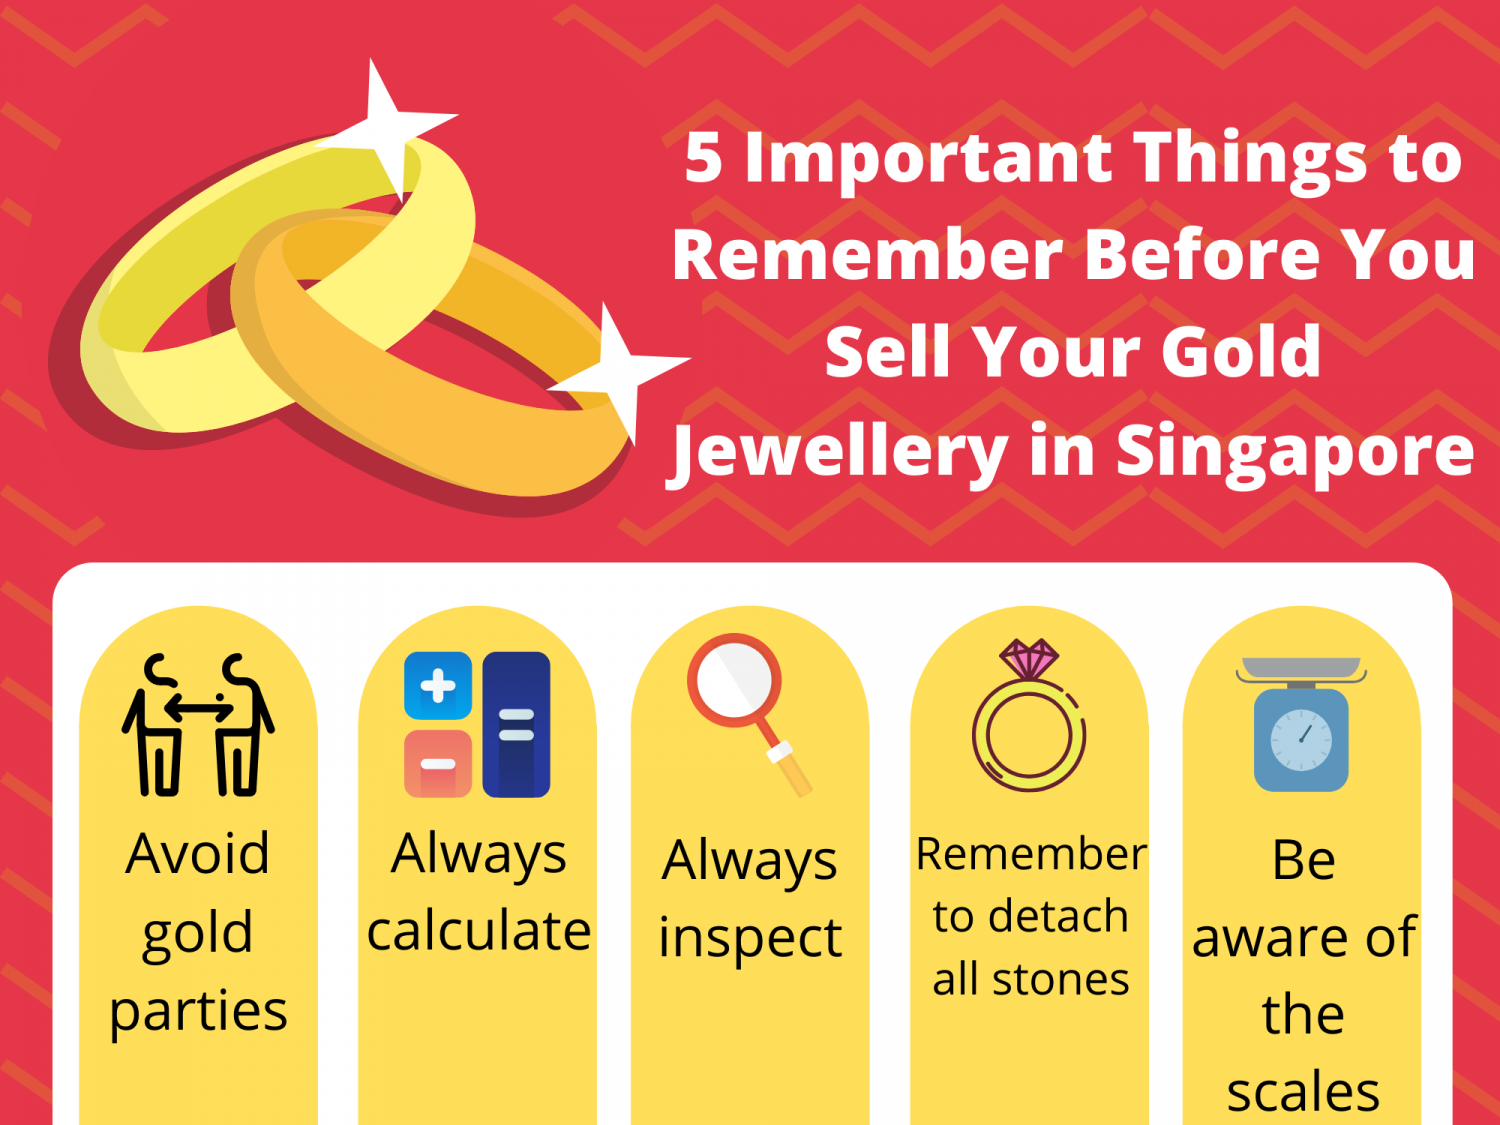 5 Important Things to Remember Before You Sell Your Gold Jewellery in Singapore Infographic